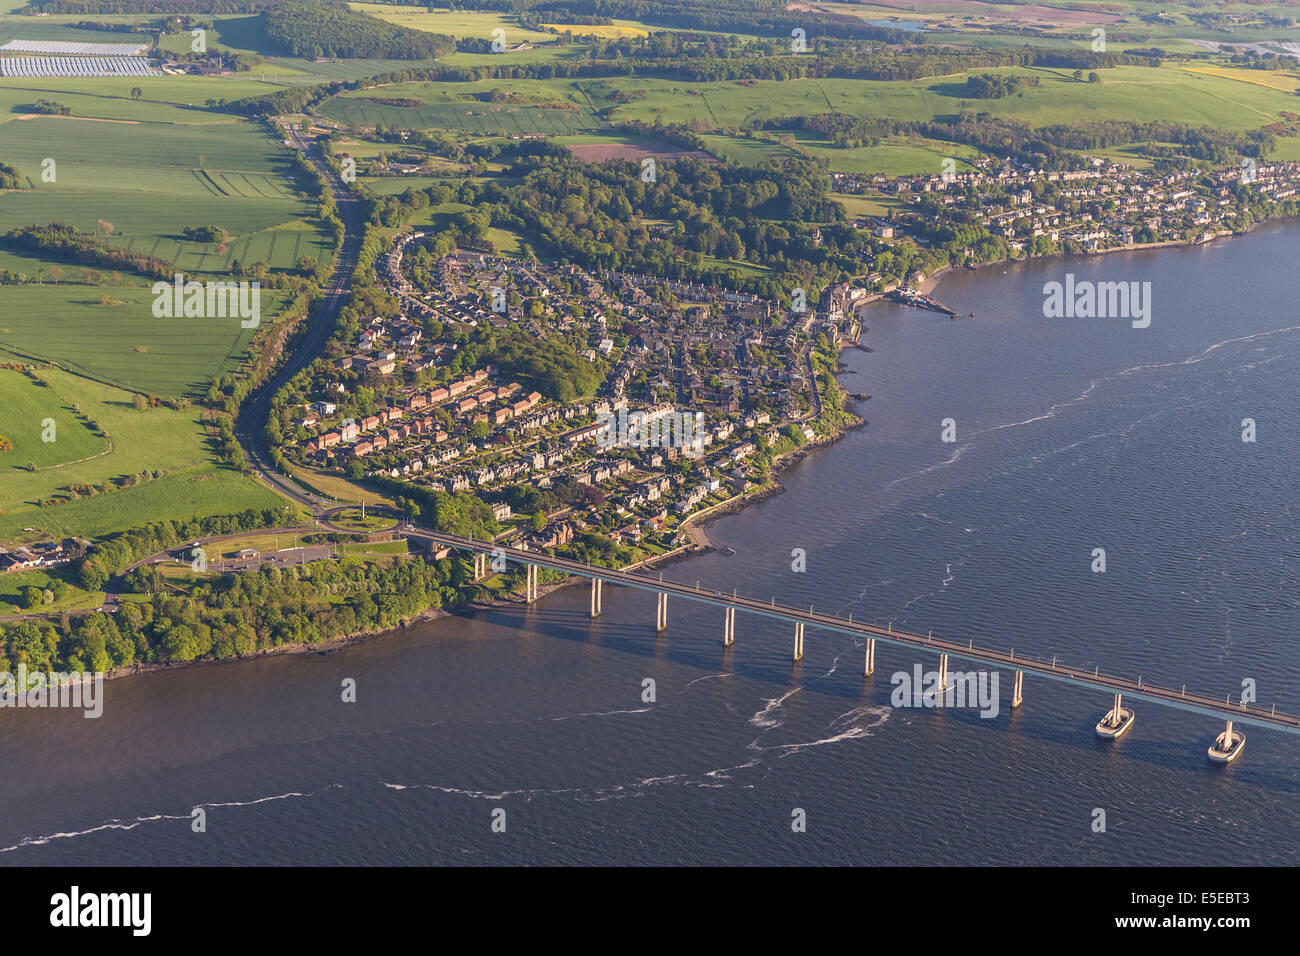 Aerial view over Dundee, Scotland with the River Tay and Road and Rail Bridges visible - Stock Image